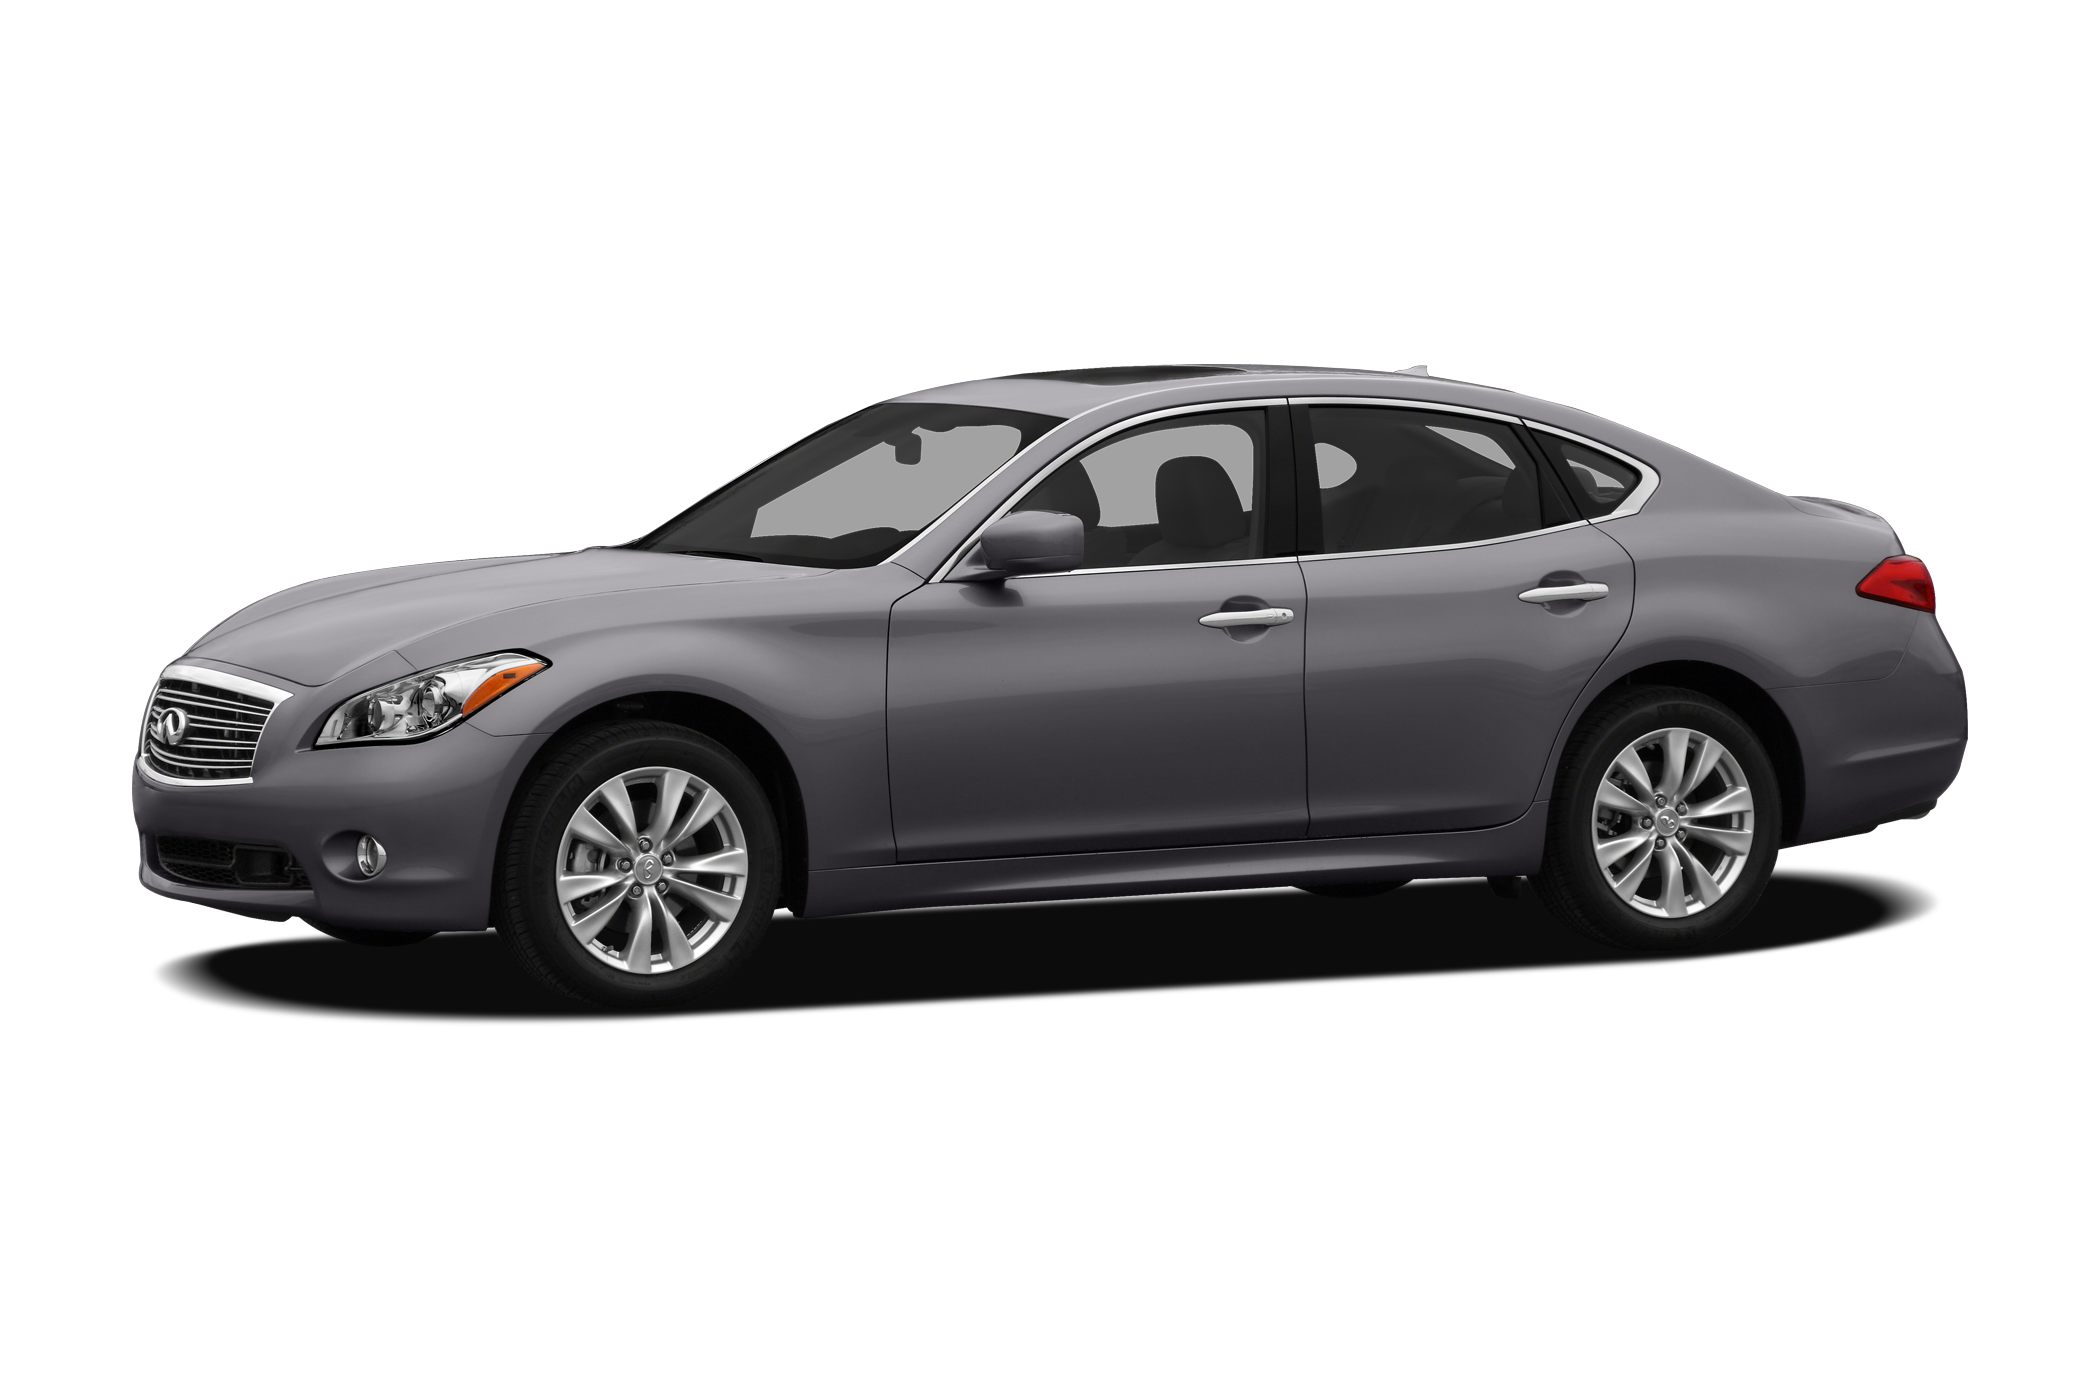 2012 Infiniti M37 X Sedan for sale in Bronx for $25,995 with 56,730 miles